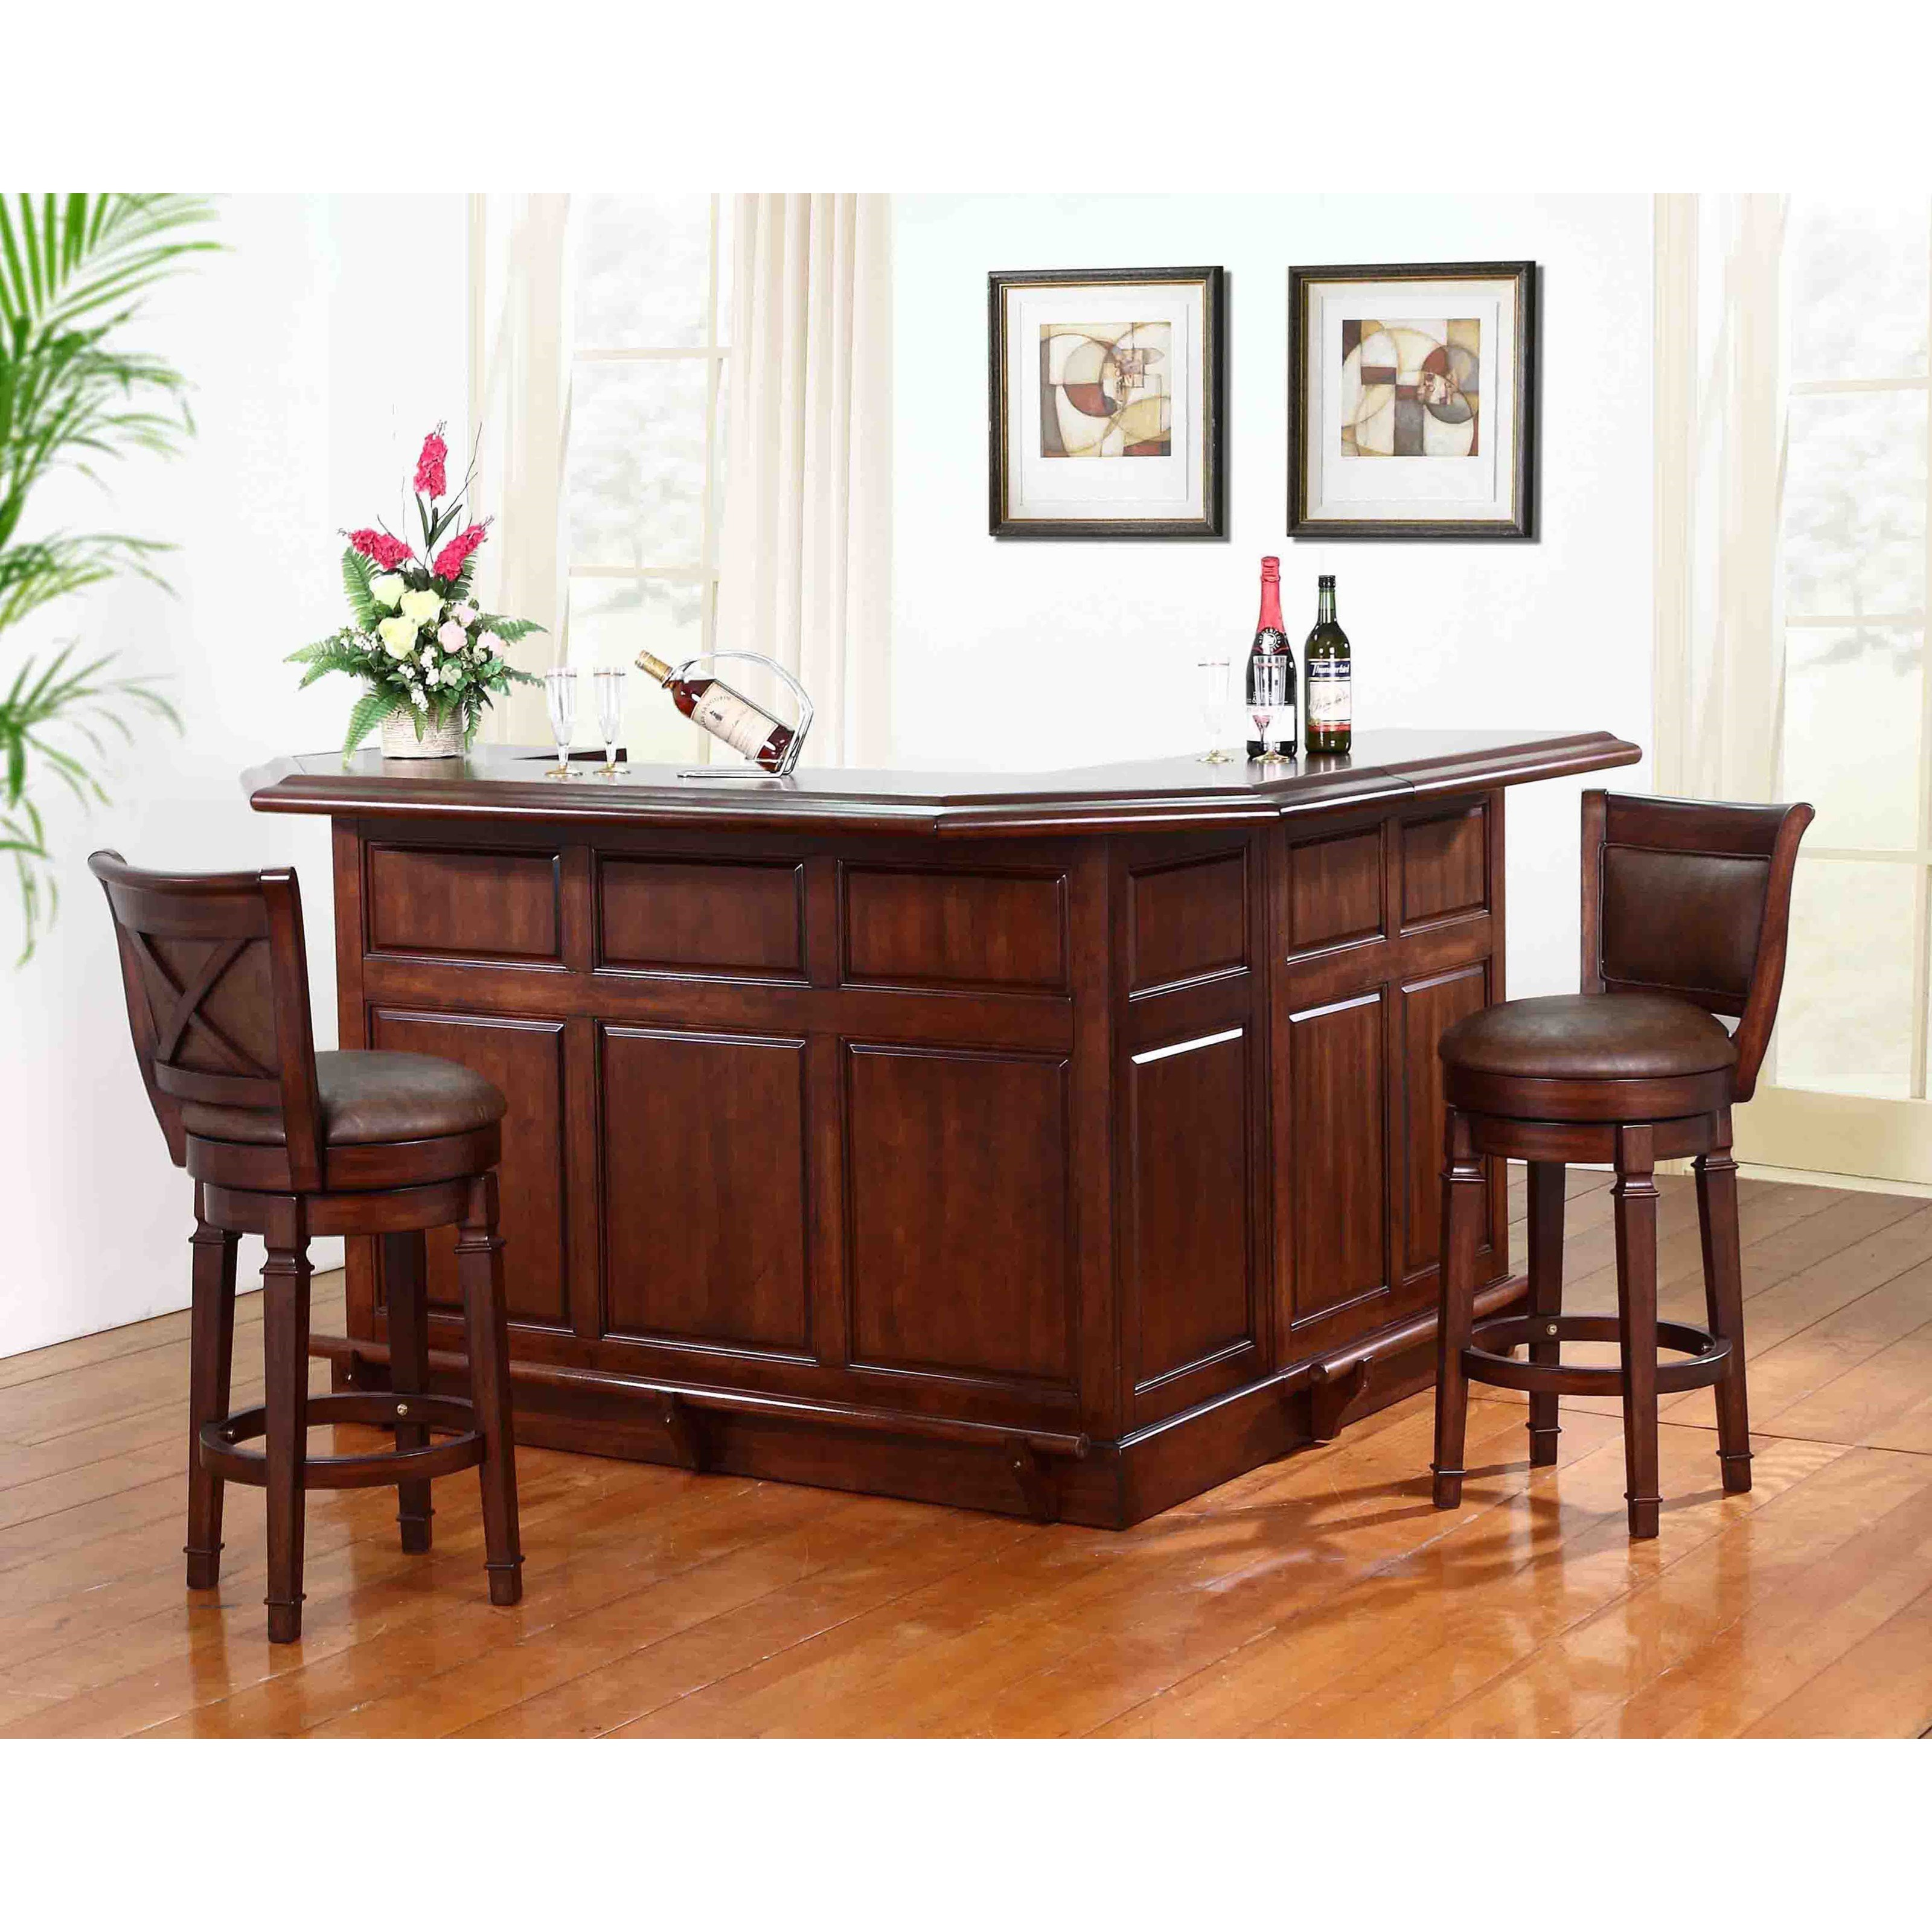 Belvedere-0411 Bar Set With Stools by E.C.I. Furniture at Northeast Factory Direct